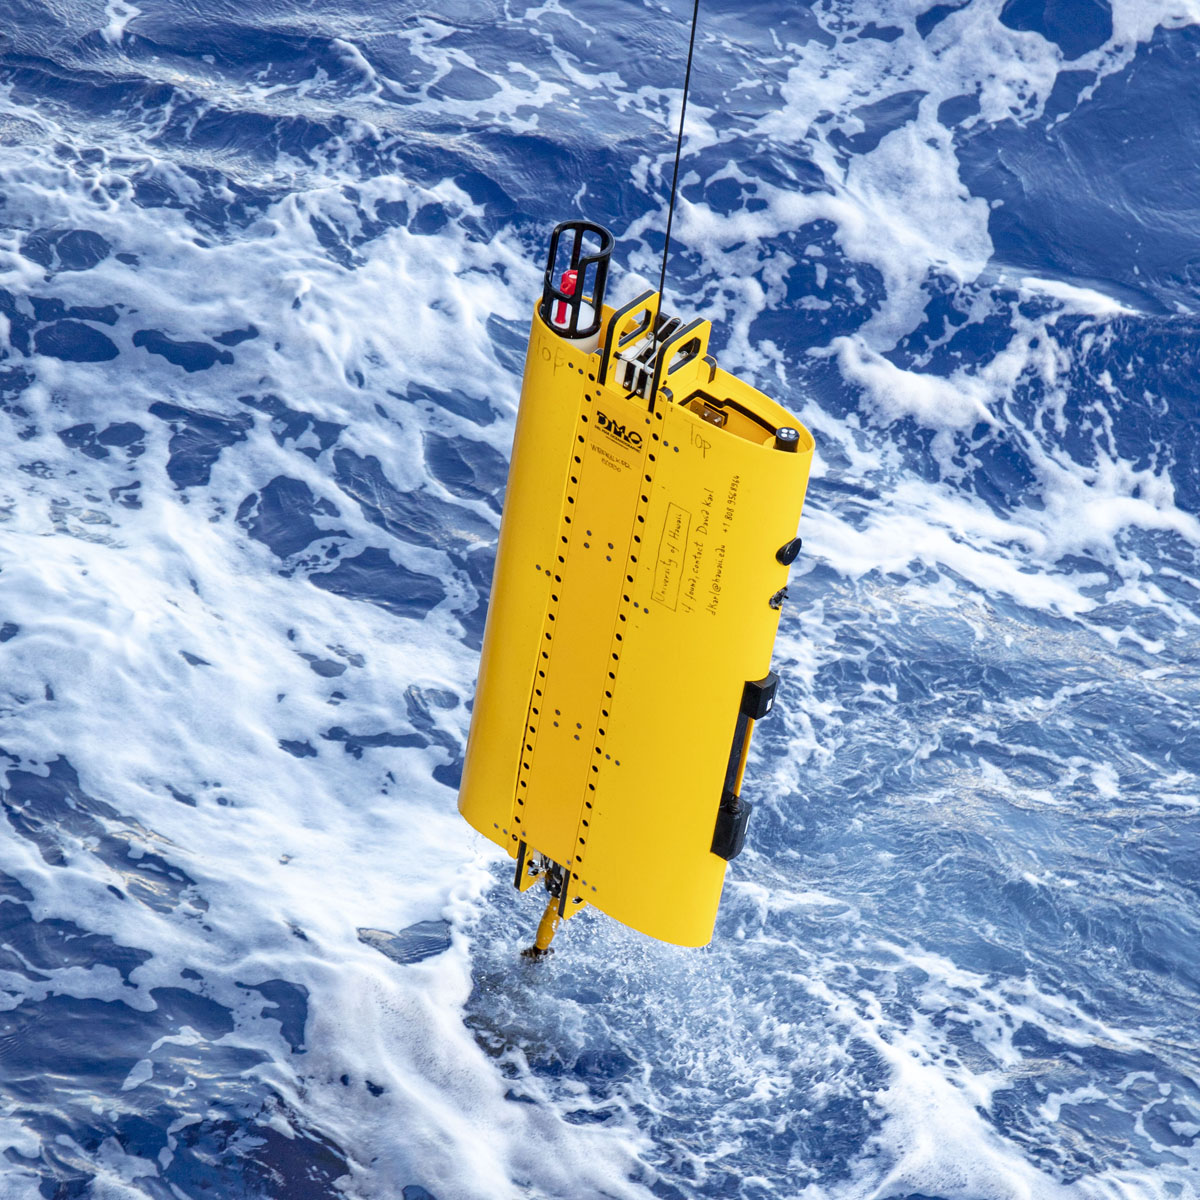 Oceanography instrument deployed as part of the HOTS/SCOPE project. Photo by K. Maloney